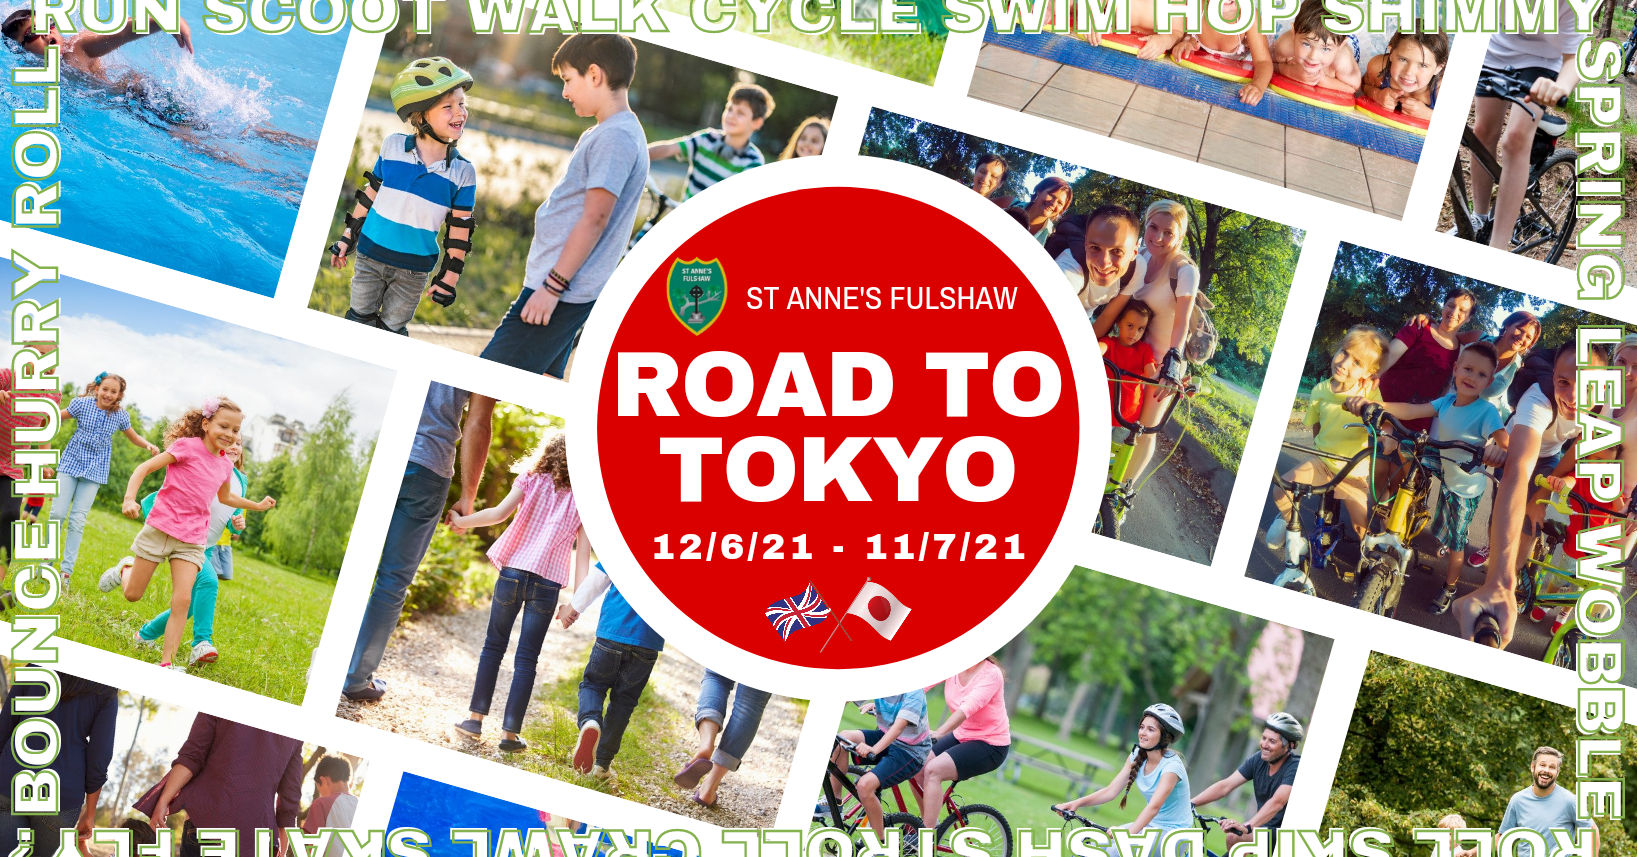 St Anne's Road to Tokyo